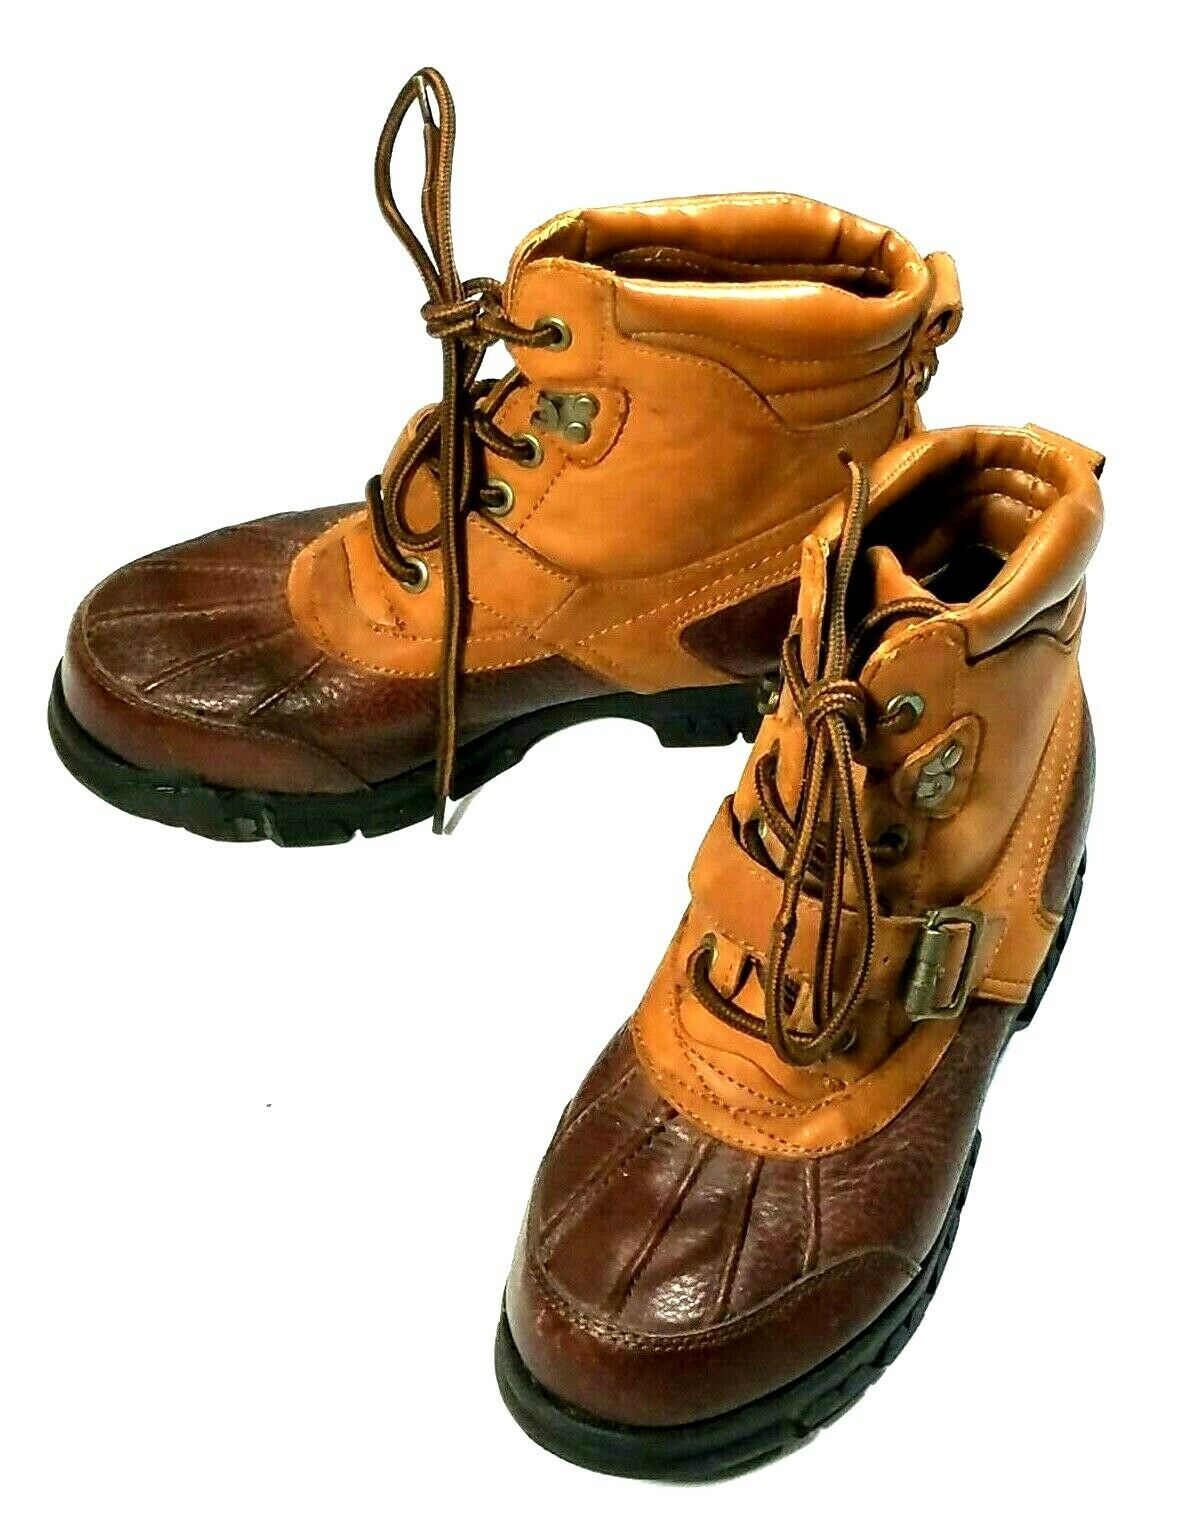 Vintage HUNT CLUB 063-0733 Barn, Hiking, Camping, Brown Leather Boots Women's 8M